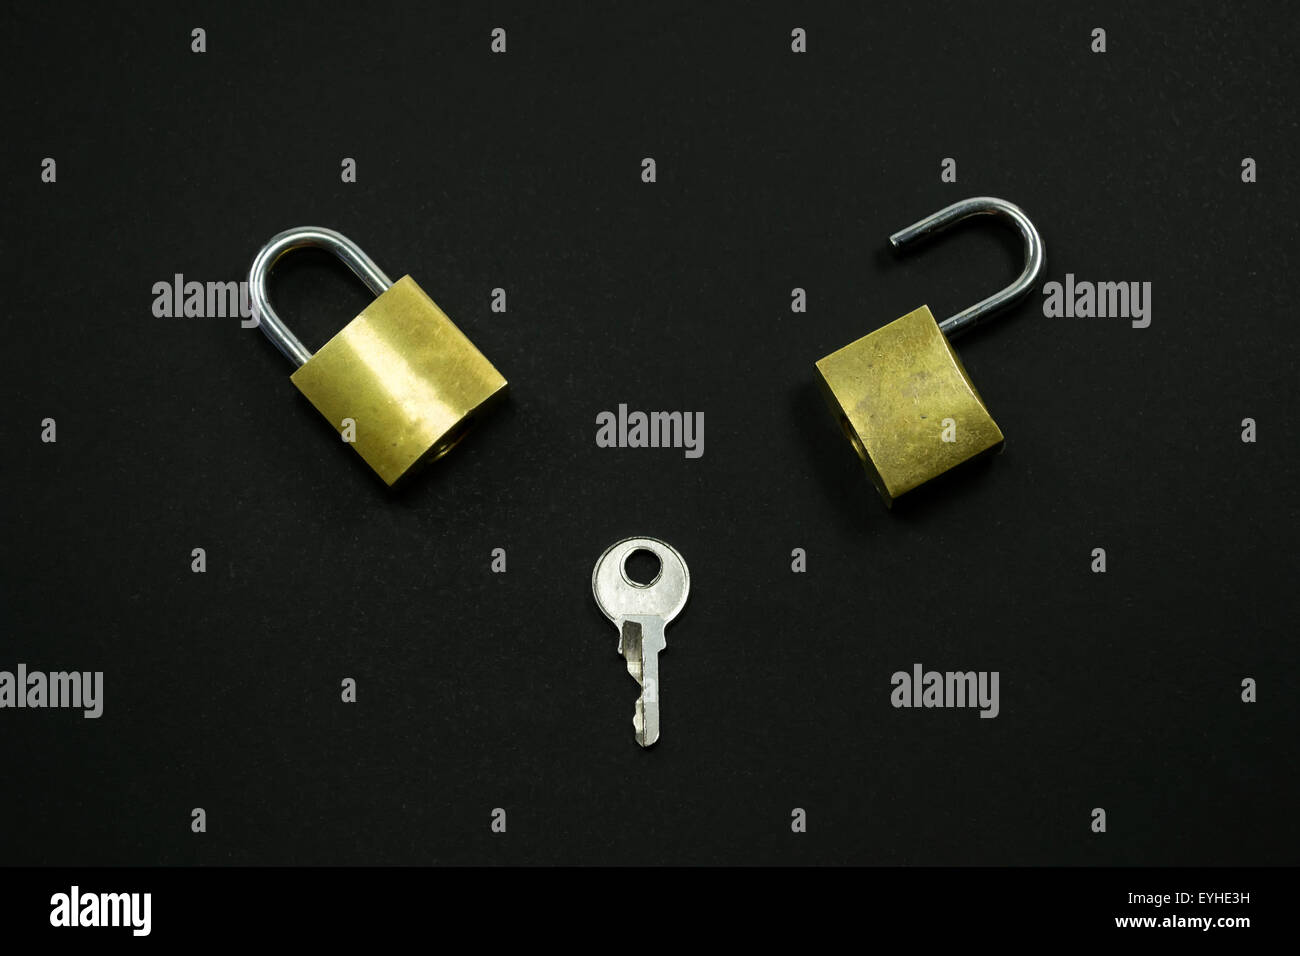 Two small locks and a key against a black background , conceptual image about problem solving process - Stock Image